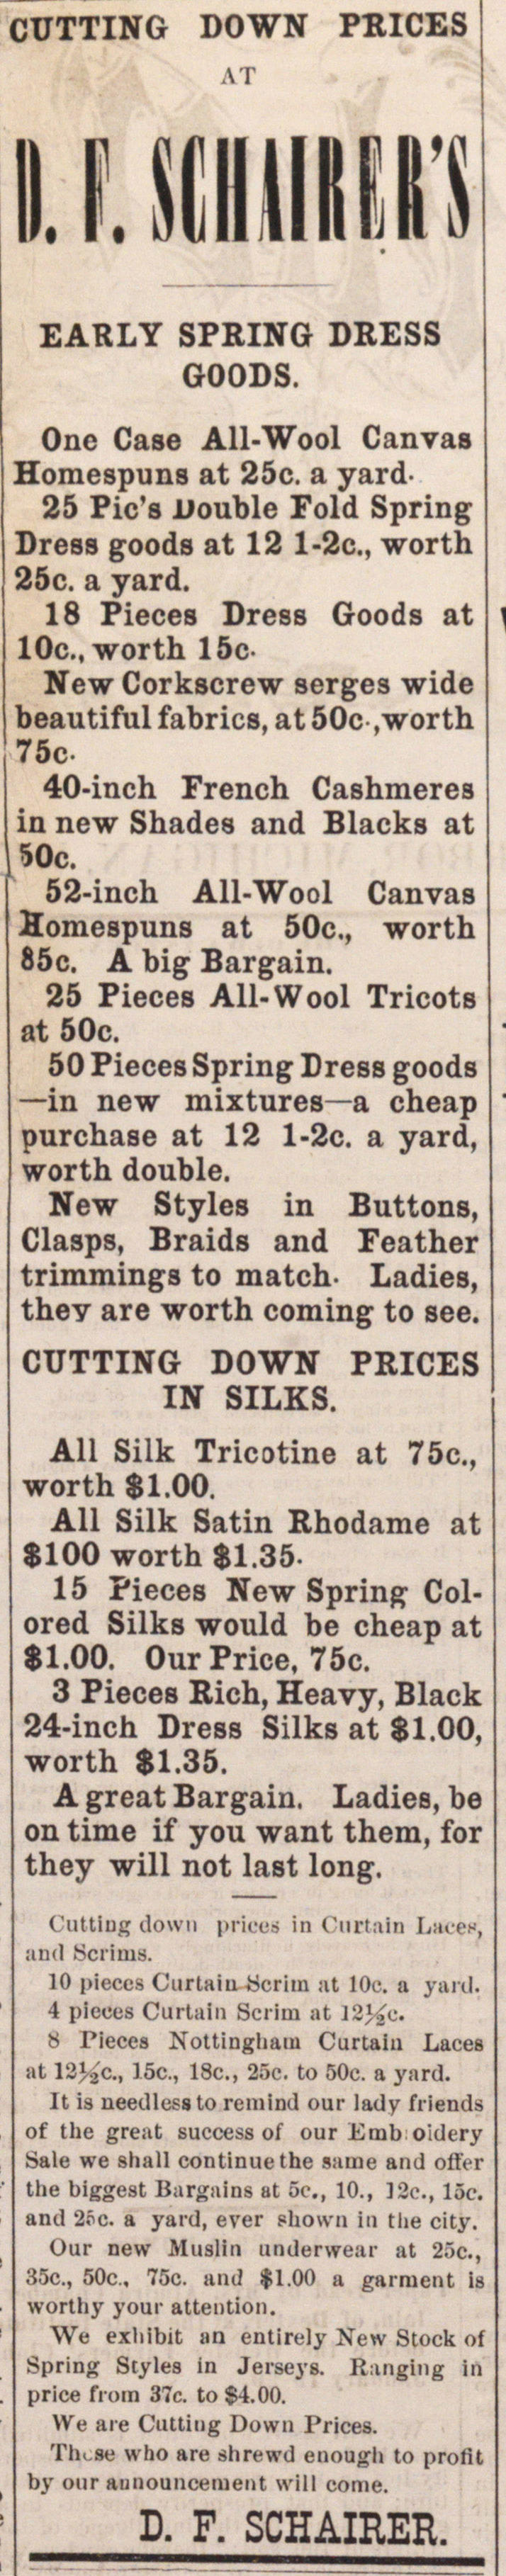 DUTTING DOWN PRICES EARLY SPRING DRESS G... image